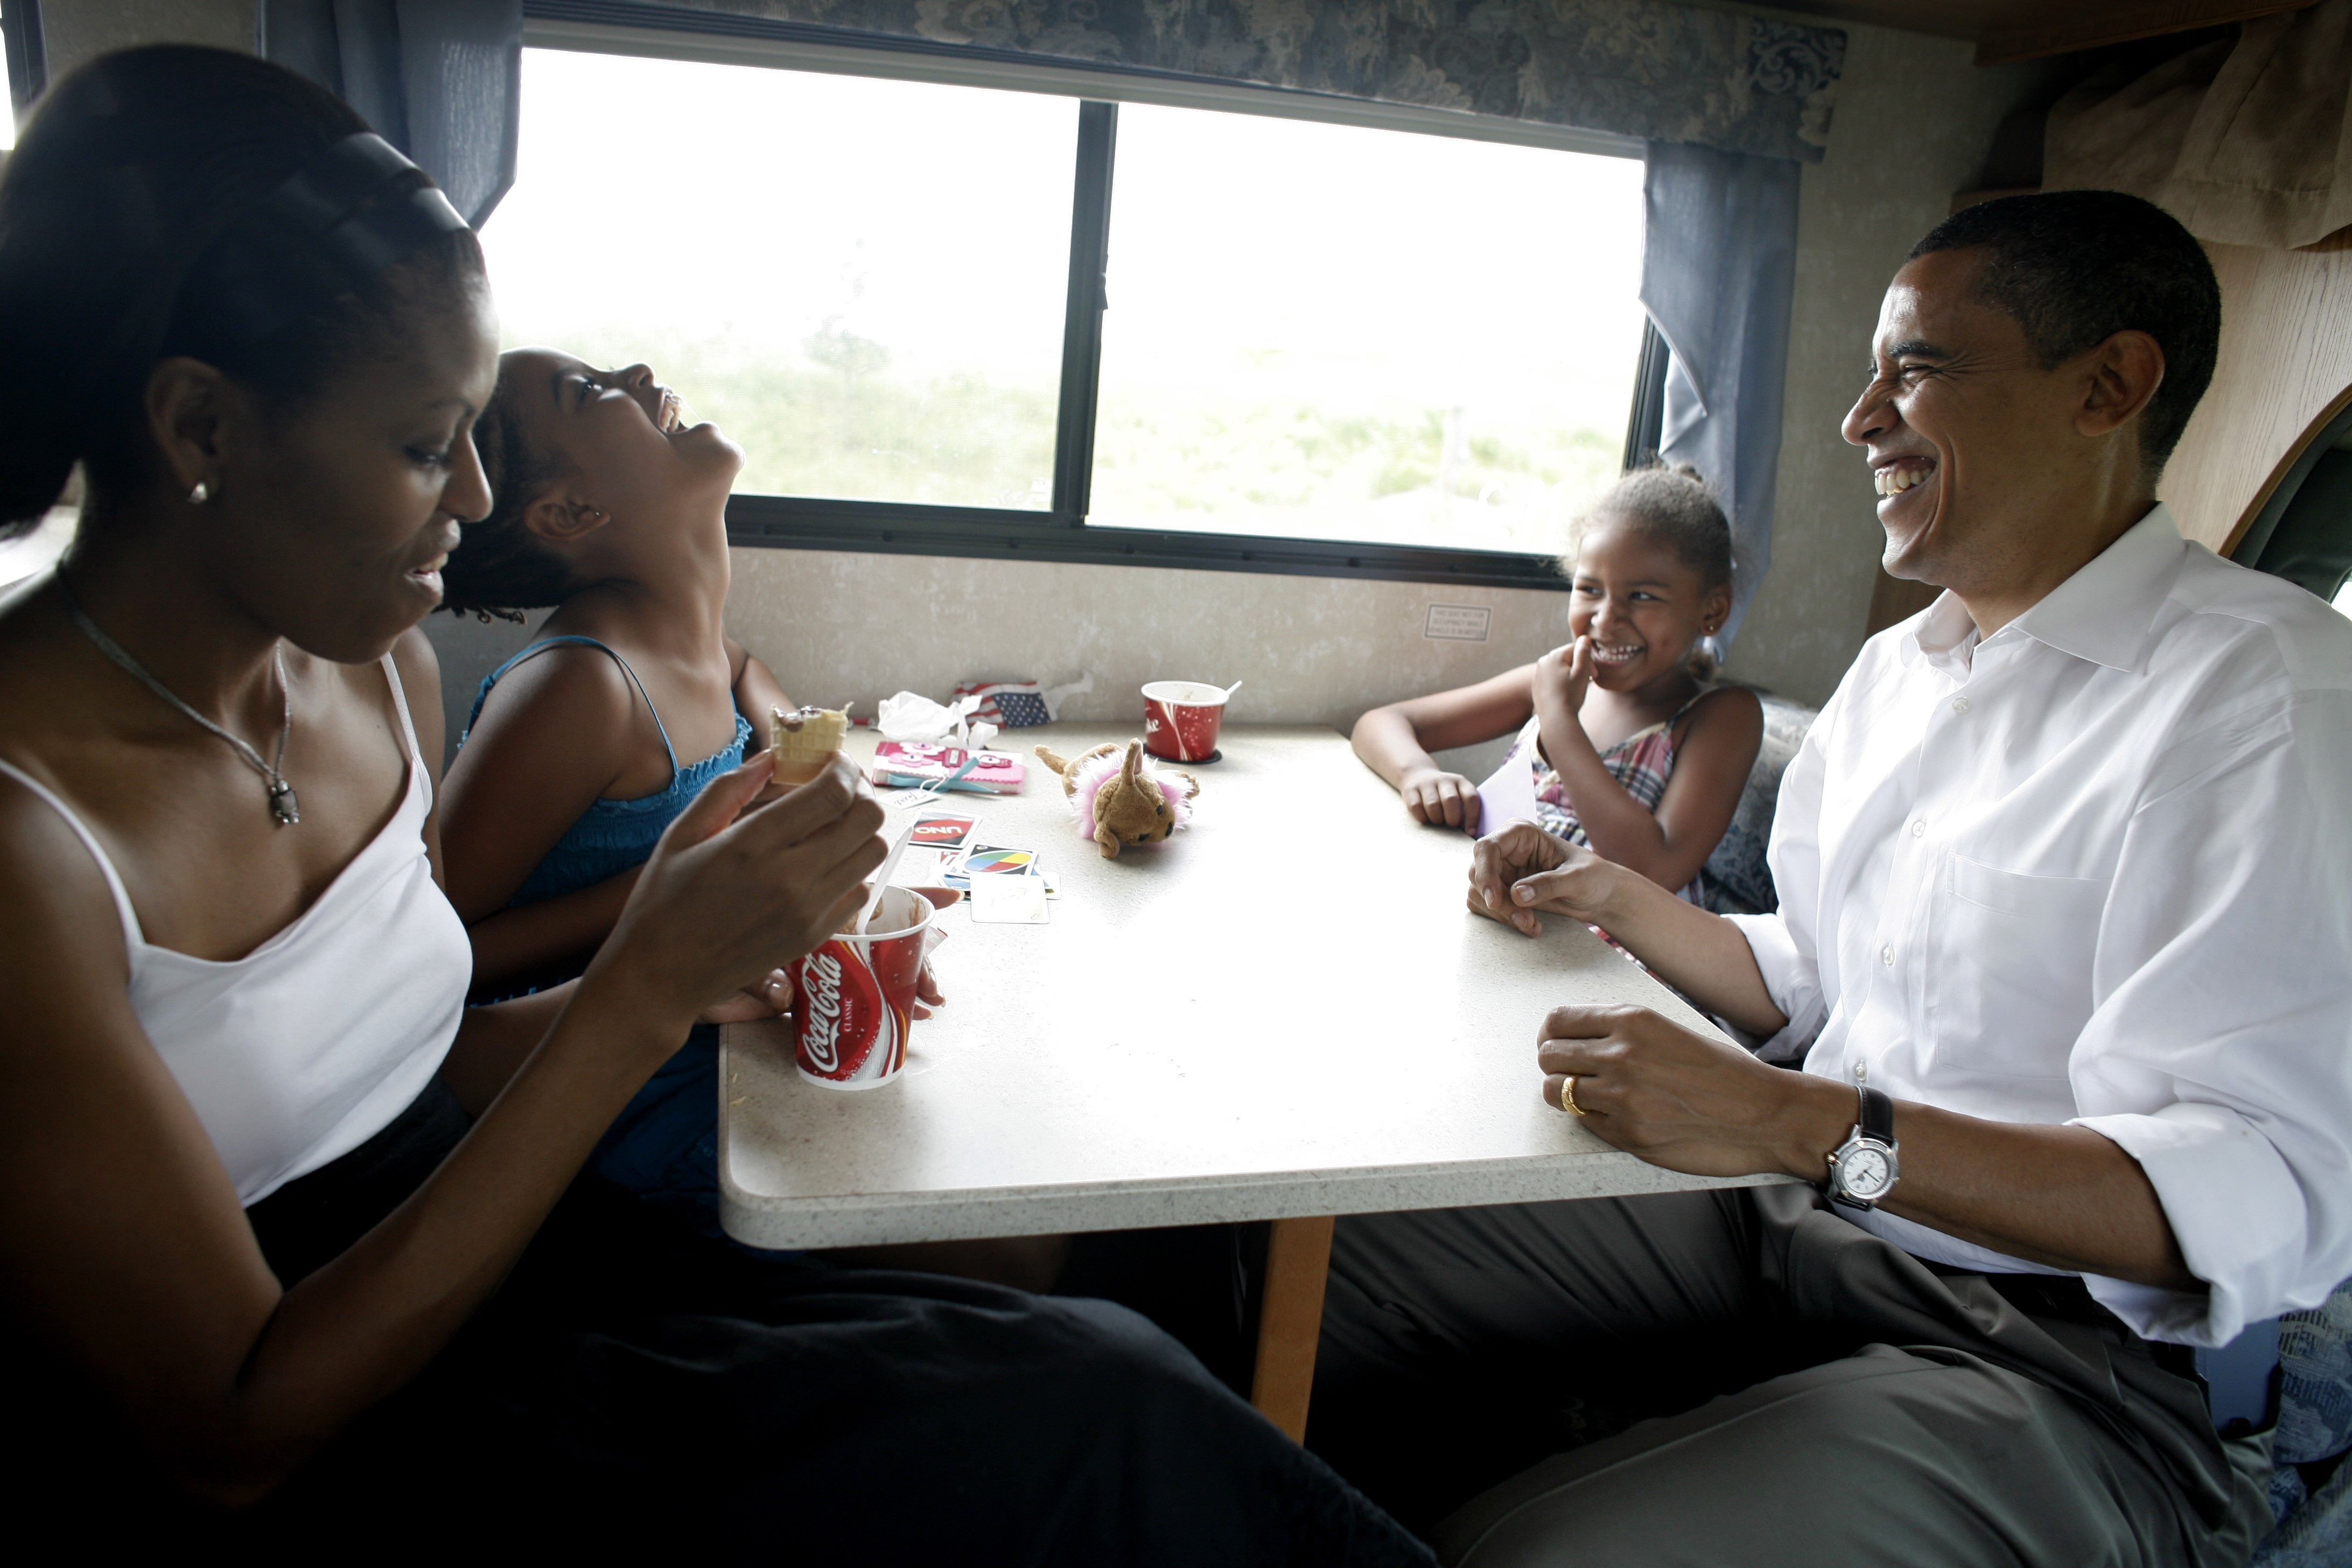 Then-Democratic presidential hopeful Senator Barack Obama, his wife Michelle and two daughters Sasha, 6, and Malia, 9, play cards in their RV on a campaign swing between Oskaloosa and Pella, Iowa, on July 4, 2007.